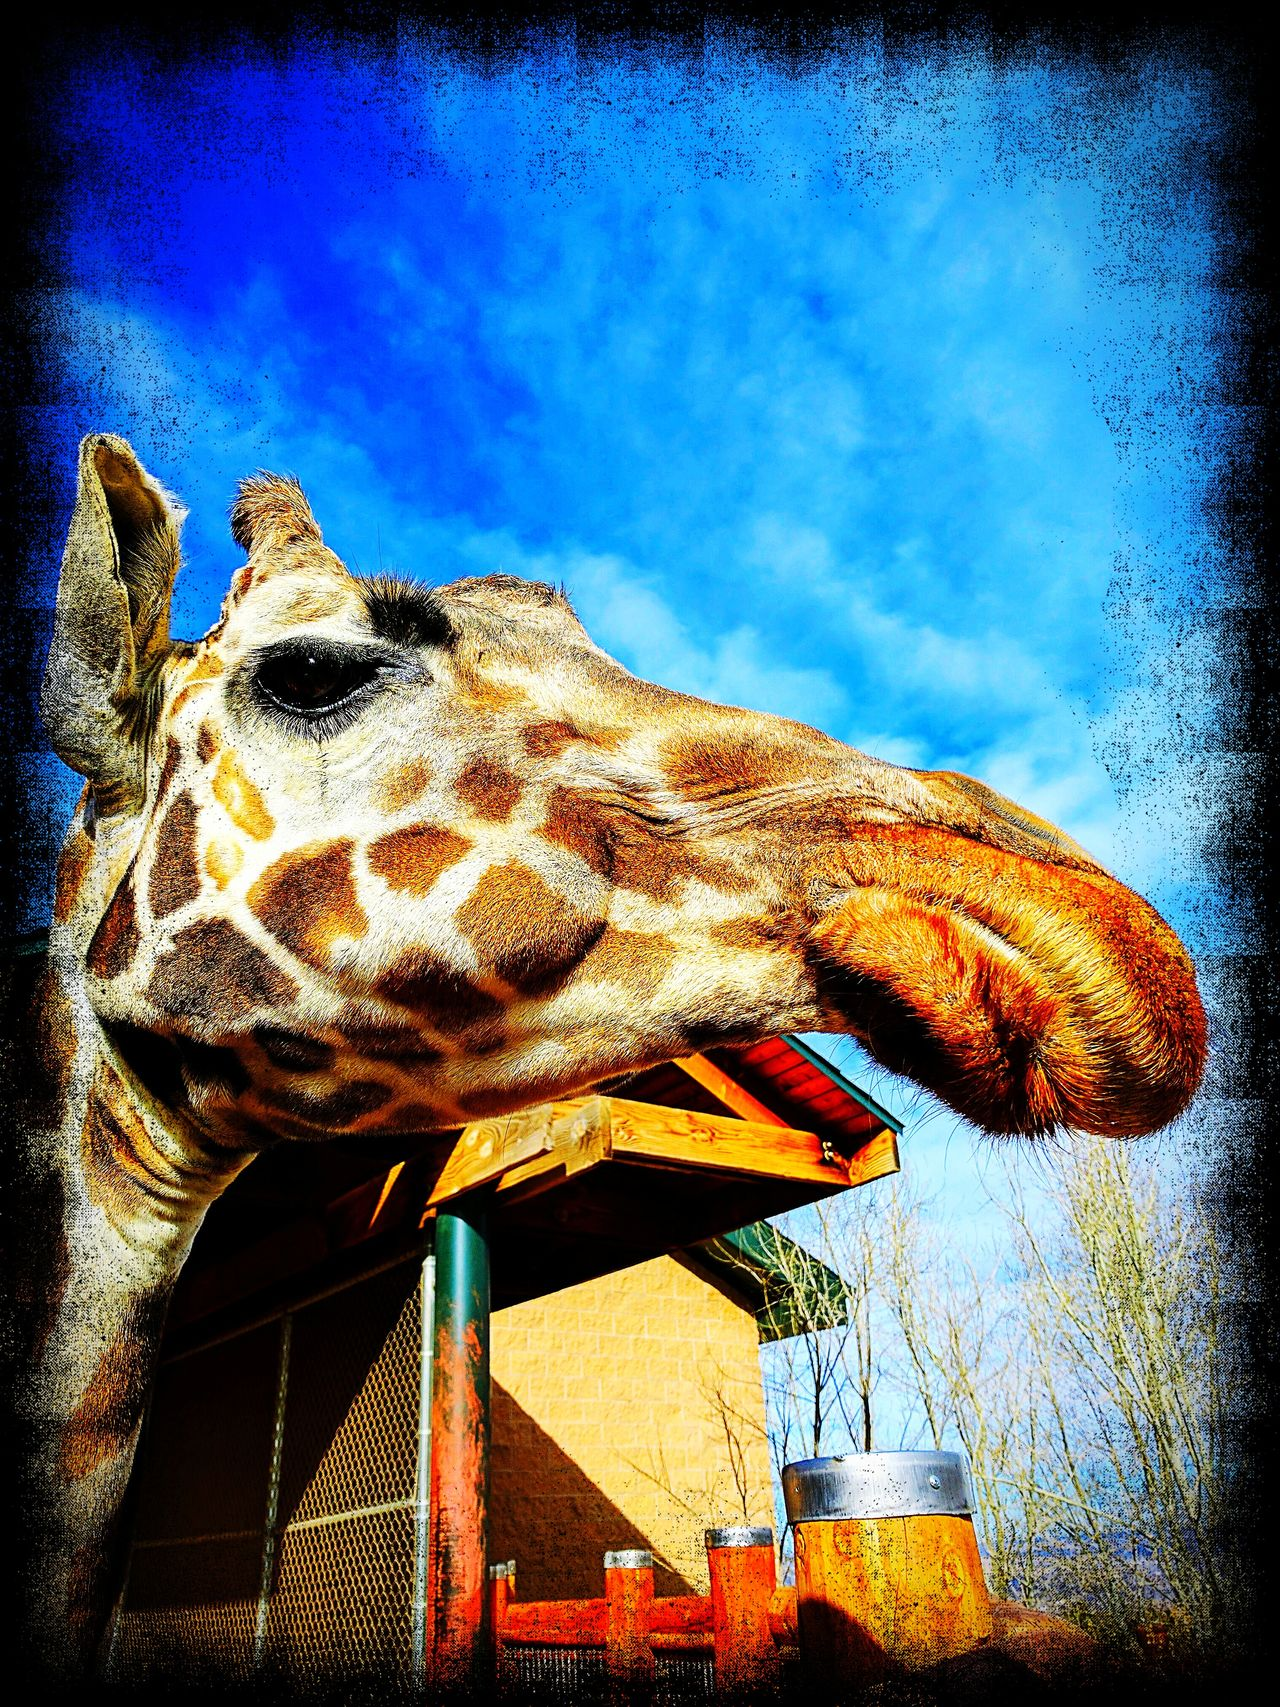 Sky No People Animal Themes One Animal Outdoors Nature Close-up Giraffe♥ Beauty In Nature Zoo Animals  Zoophotography ZooLife Aviary_edit Colorado Cheyenne Mountain Zoo Google Pixel Hello World Can You See Me?